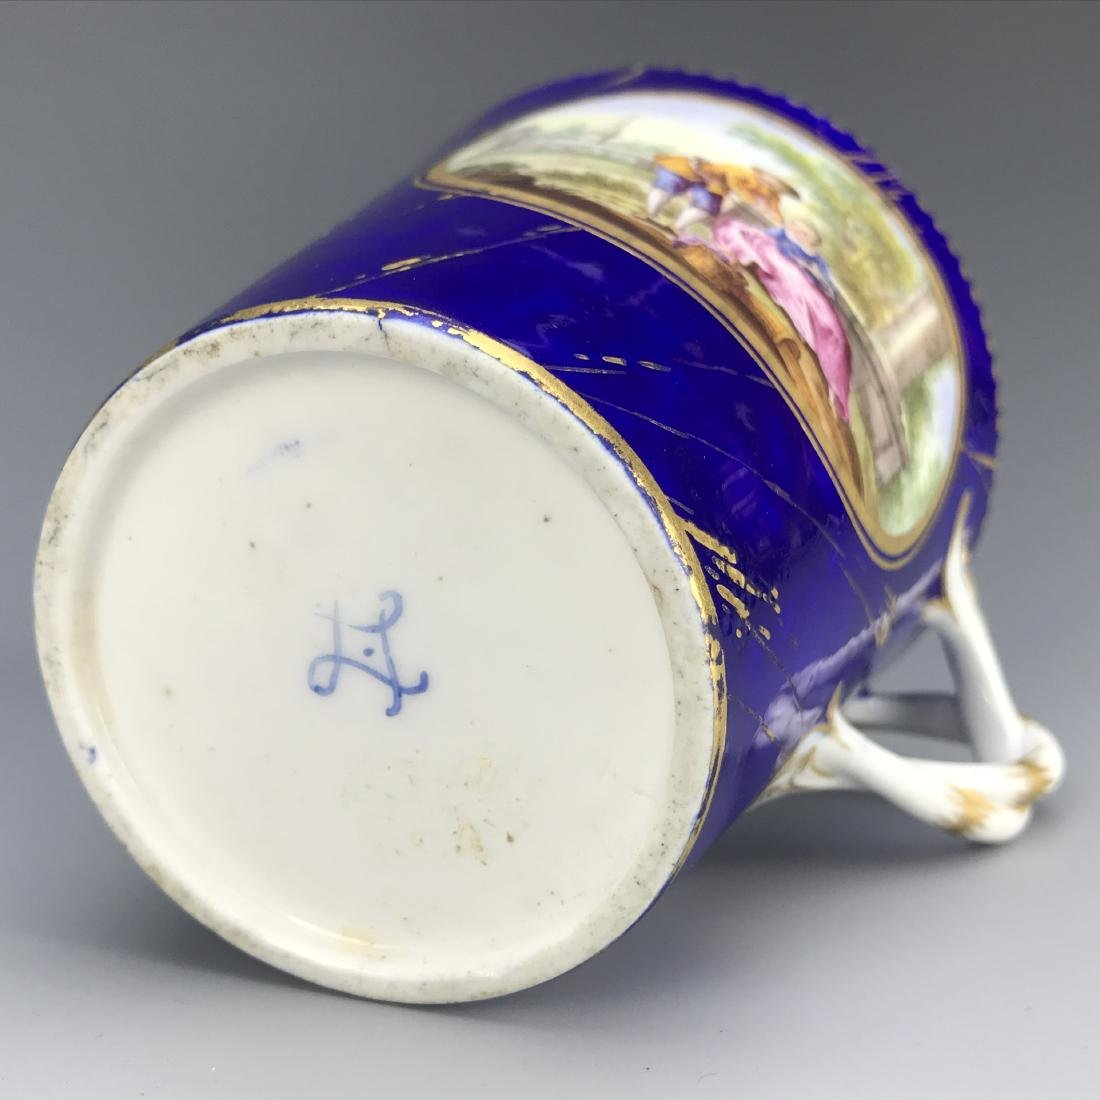 18th C. French Porcelain Sevres Cup & Saucer - 5